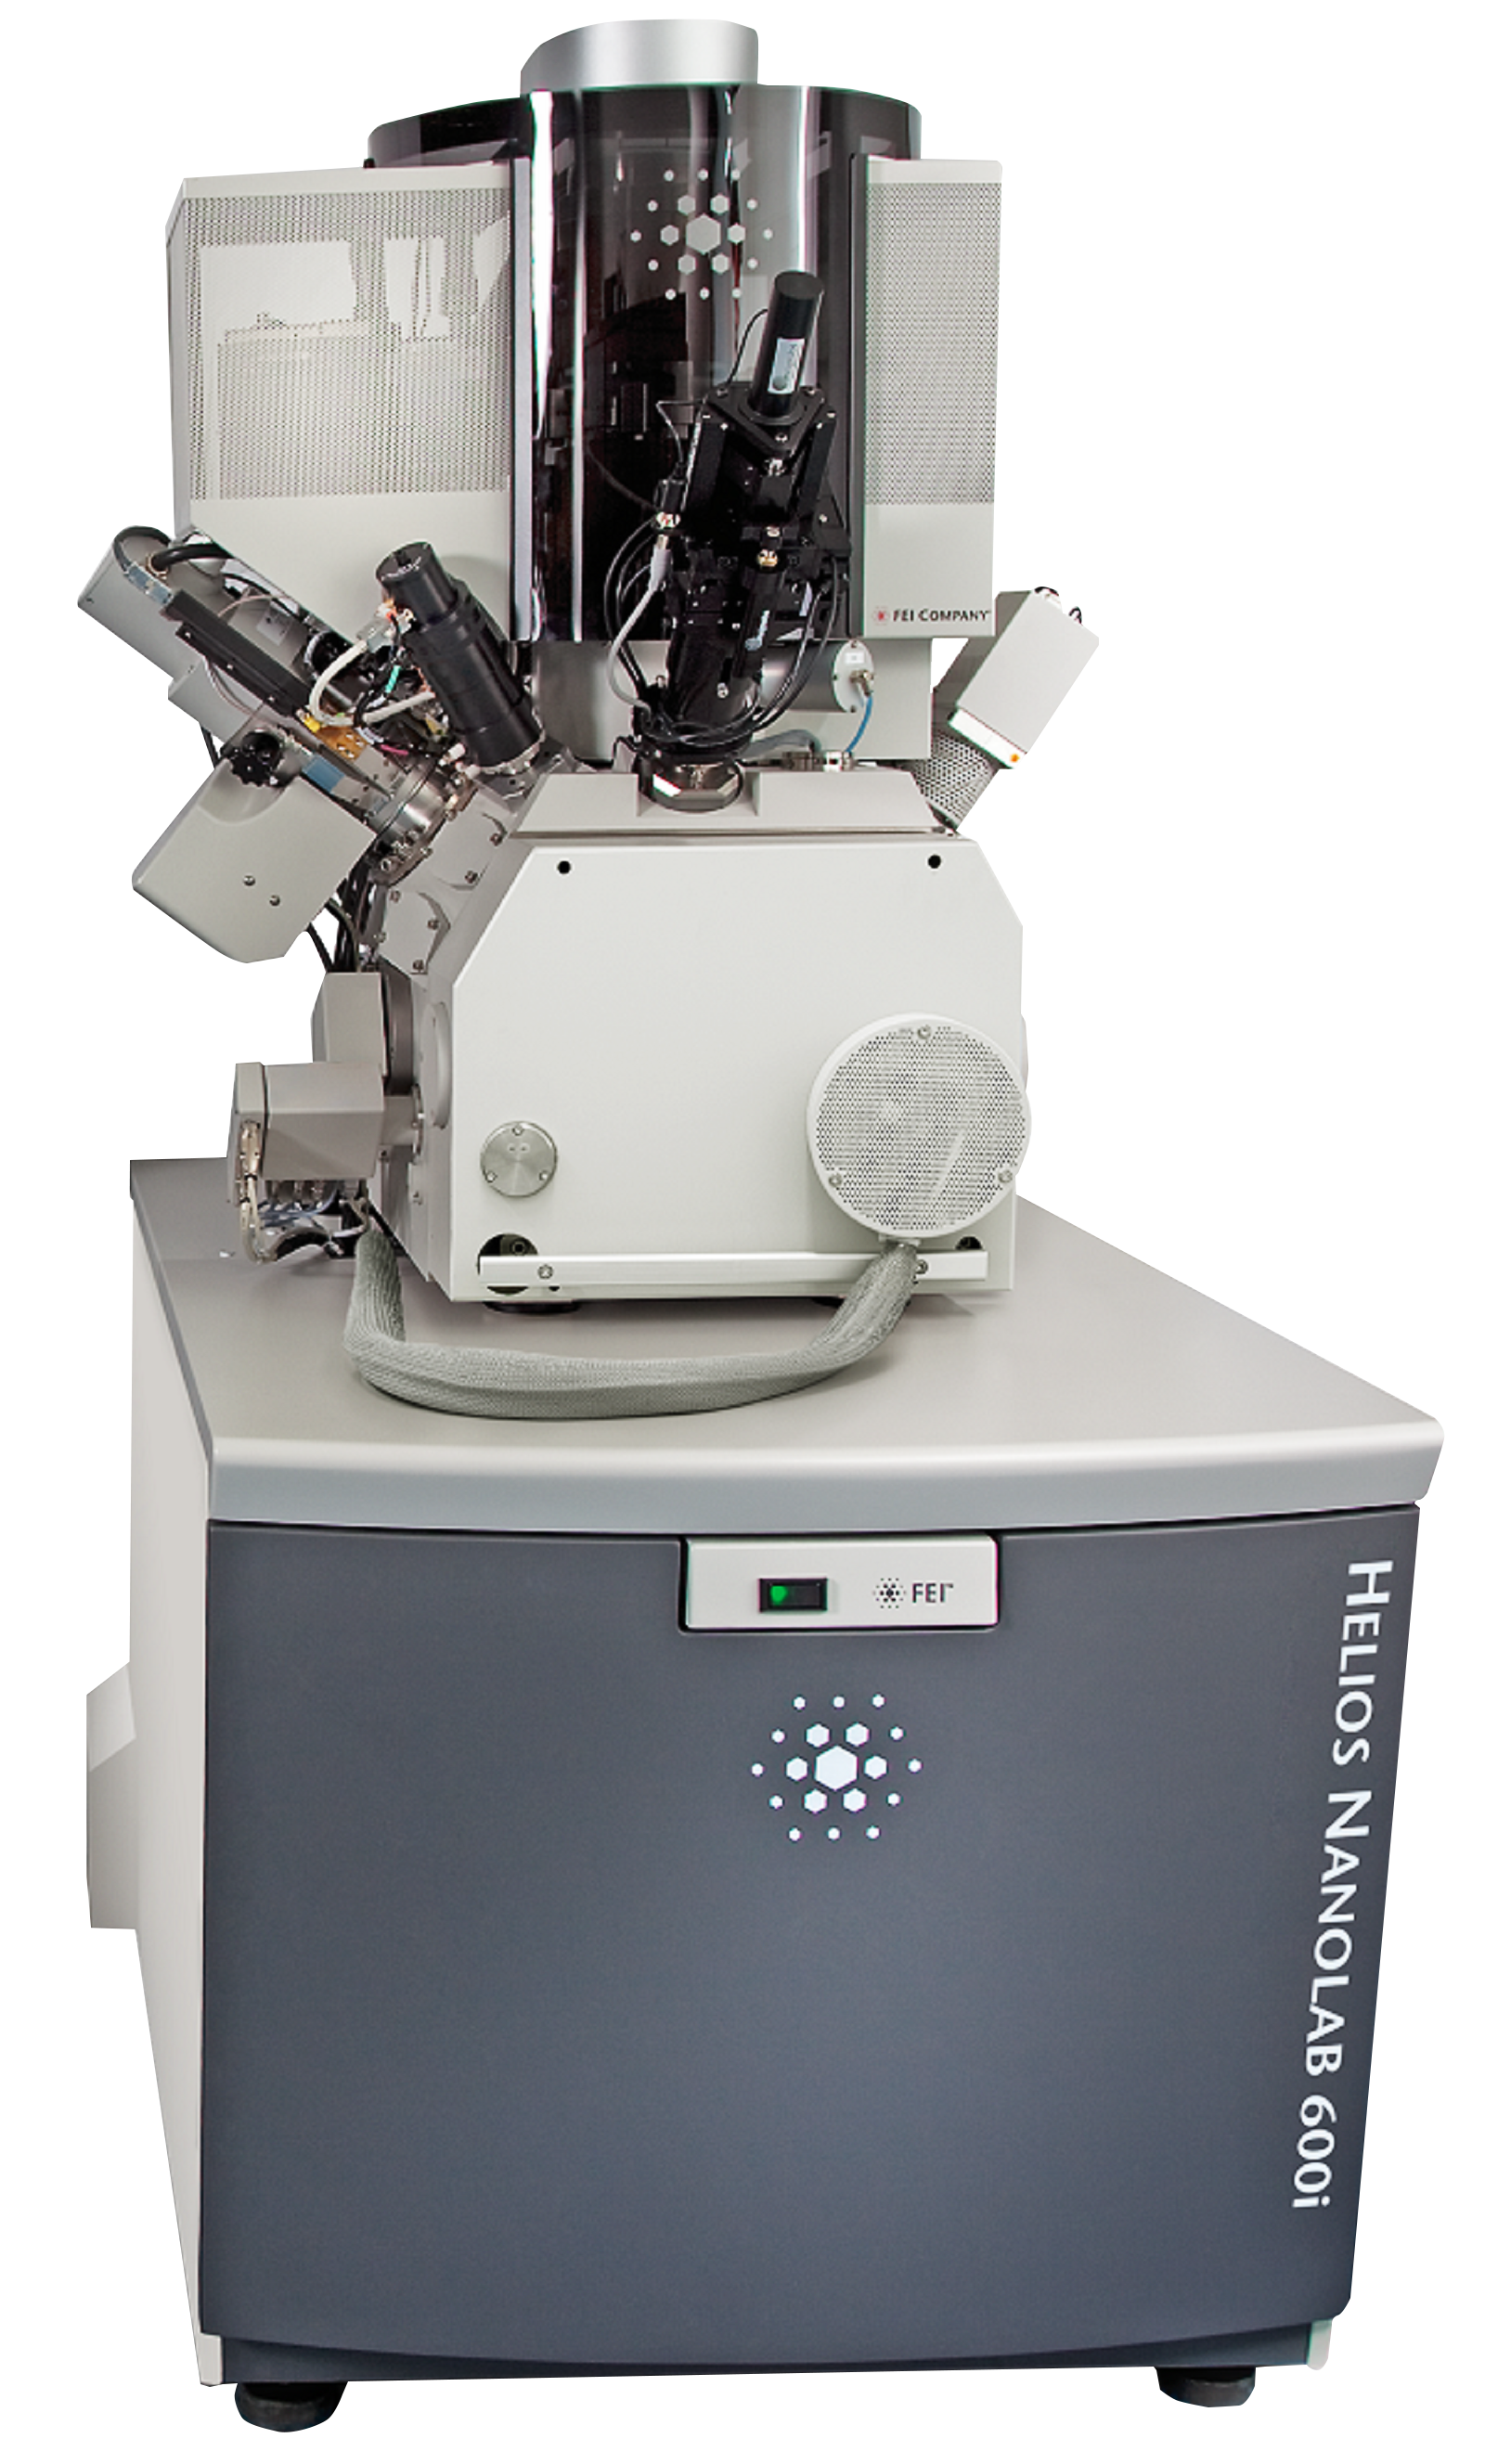 FEI Helios NanoLab 600i Focussed Ion Beam